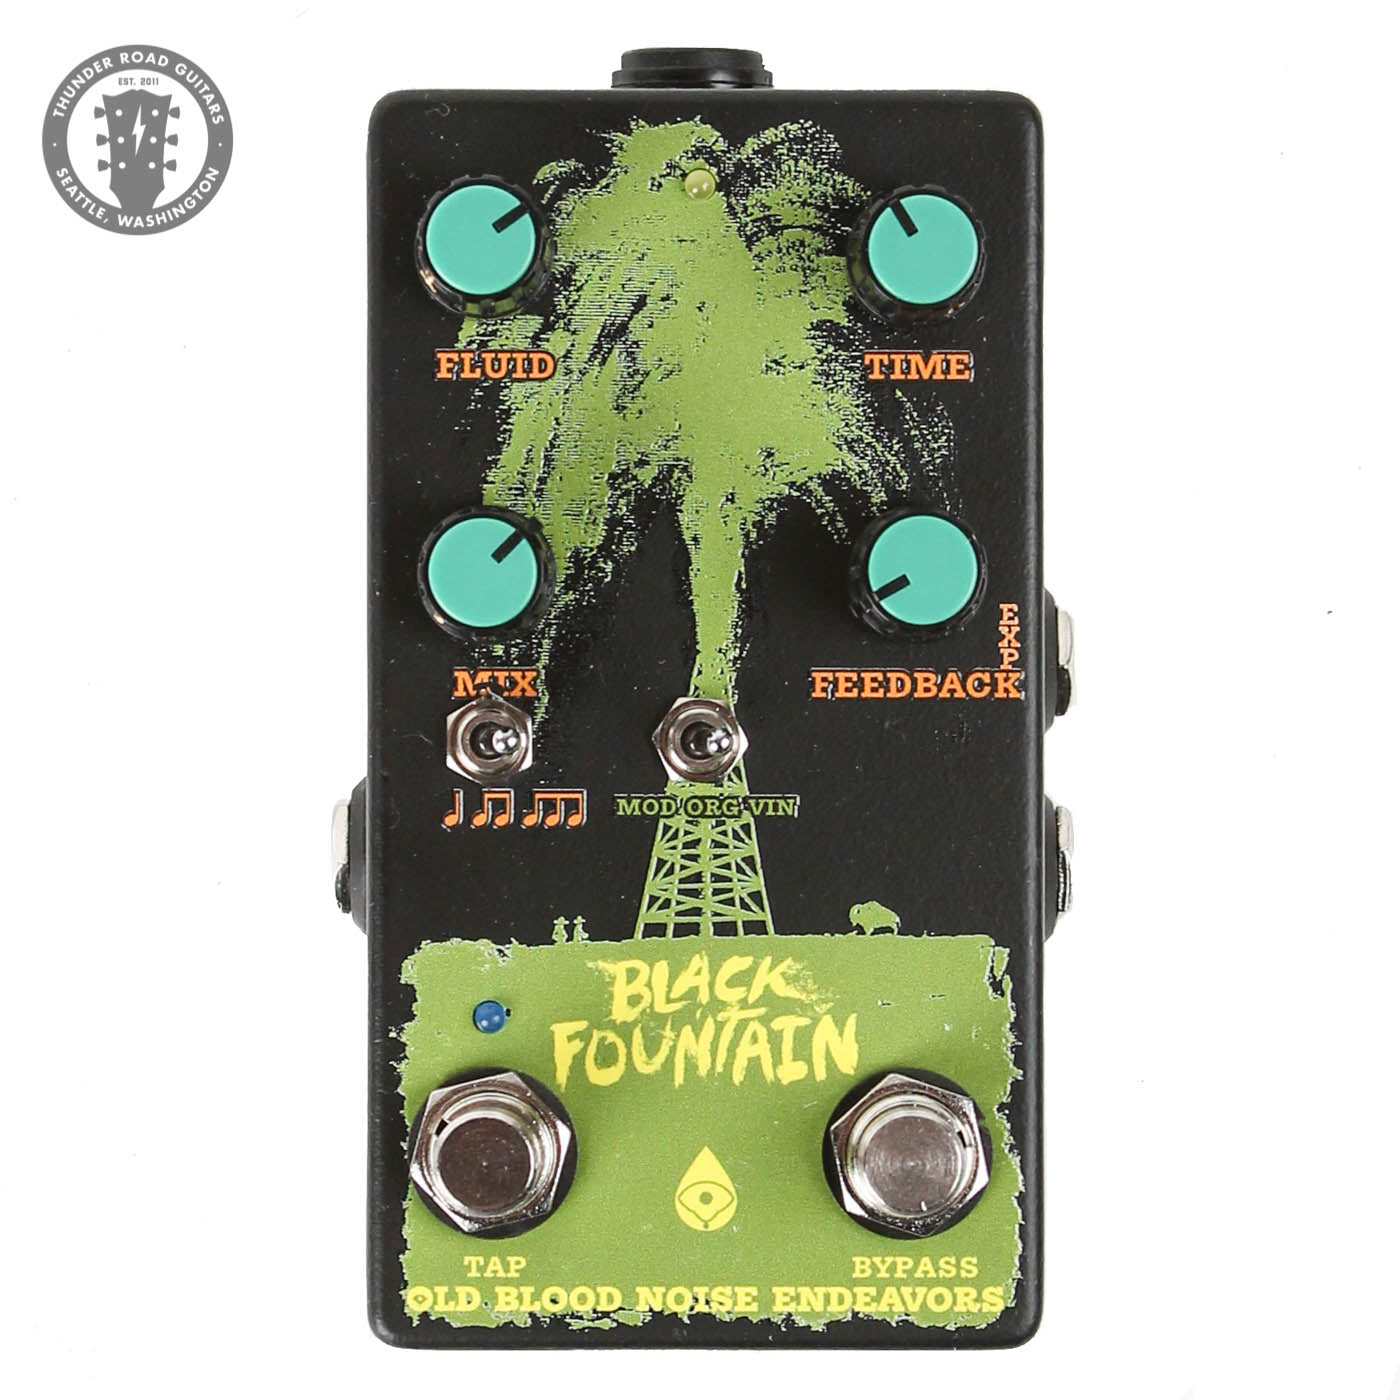 Old Blood Noise Endeavors TRG Exclusive Black Fountain (PDX) image 2